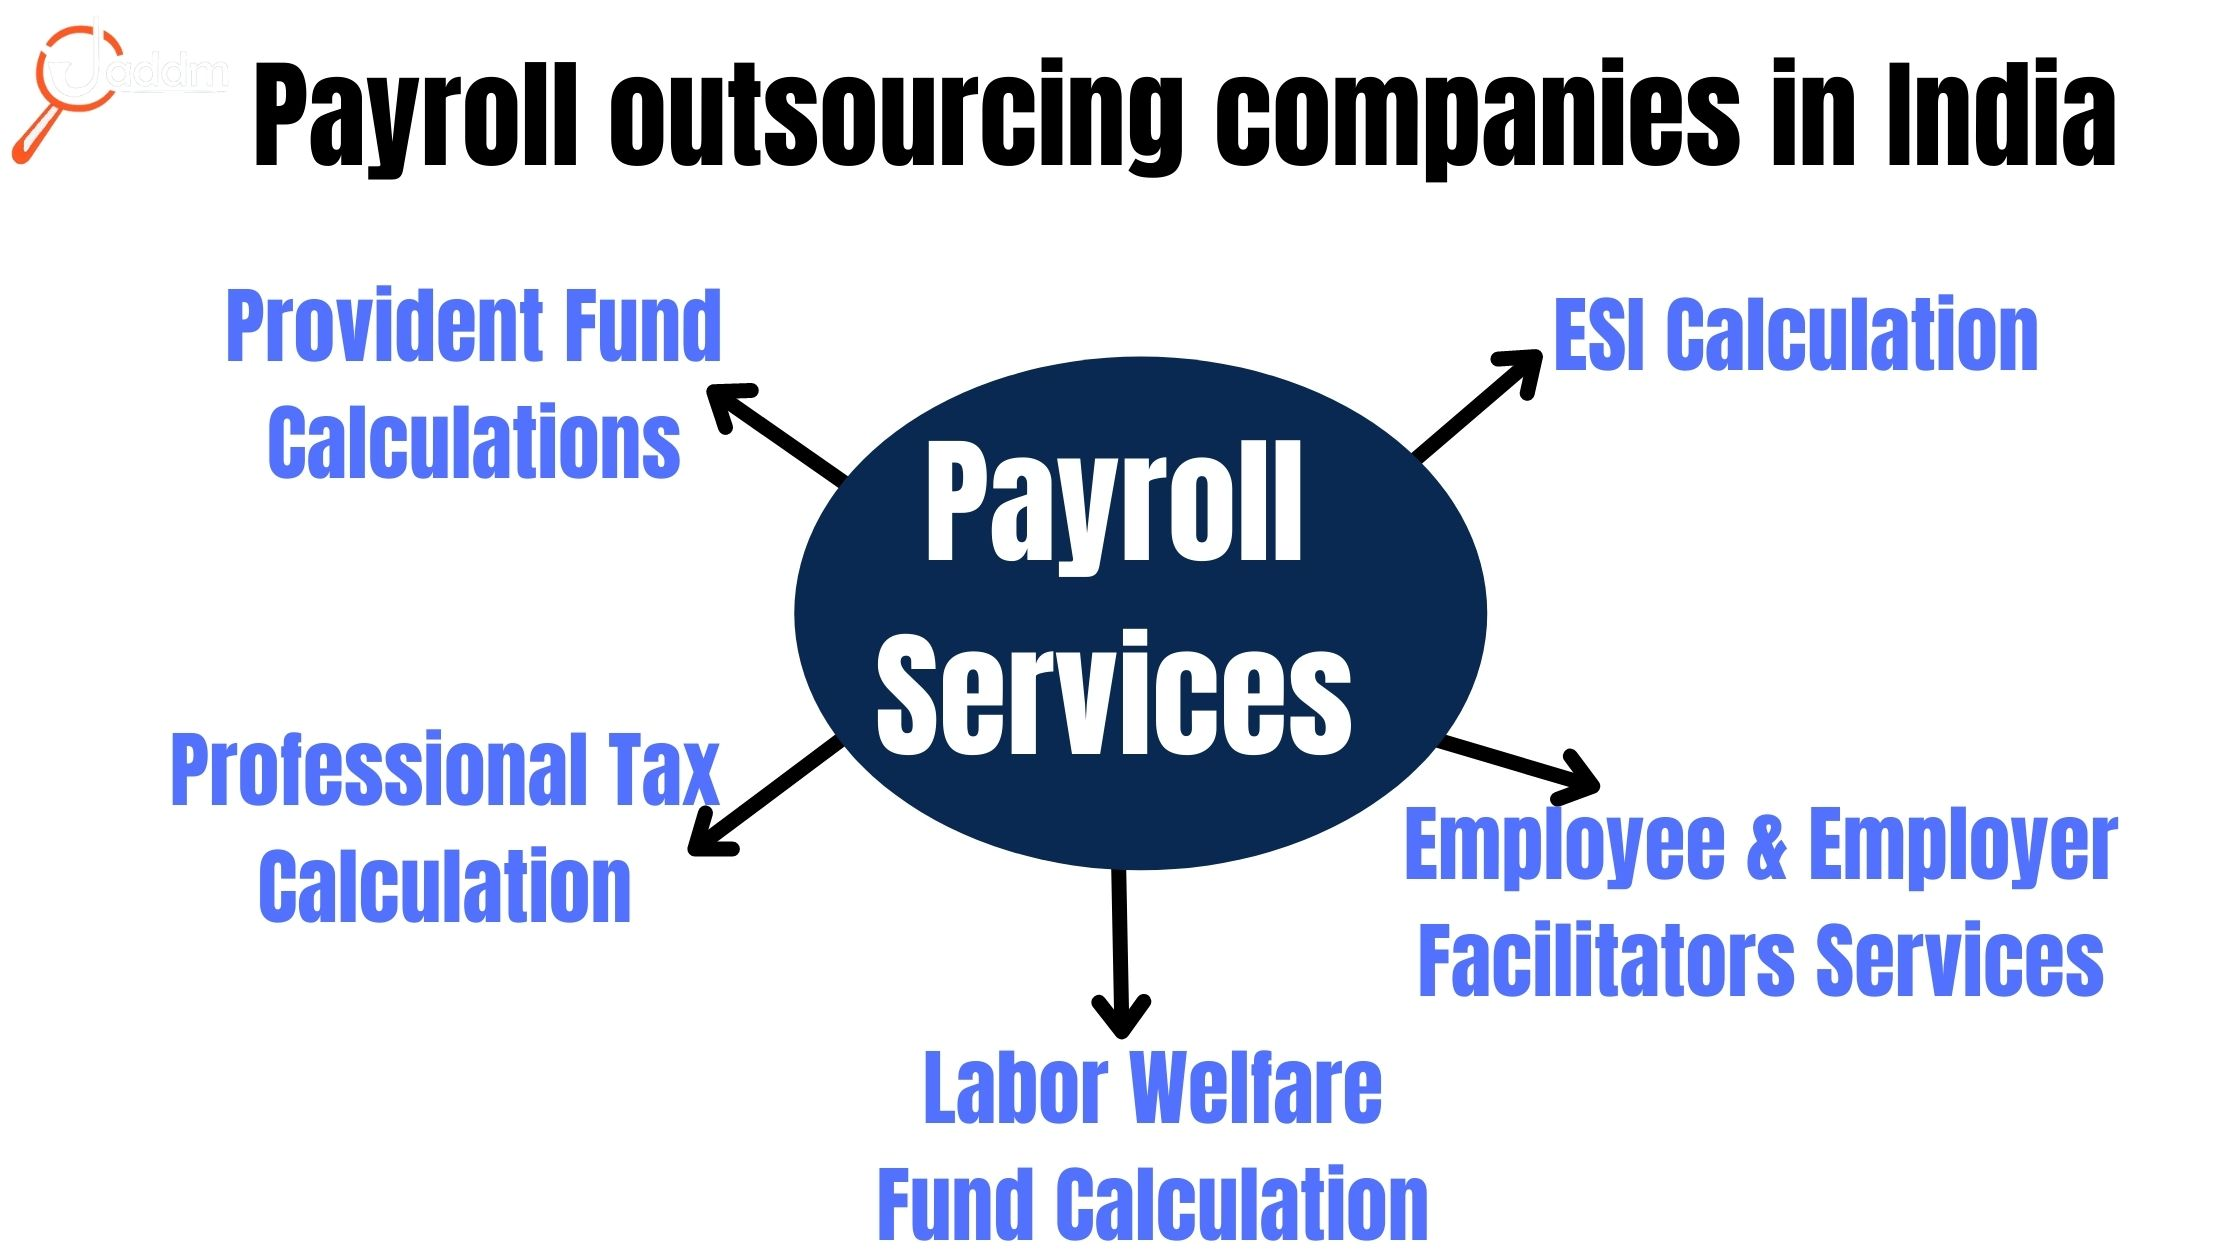 Payroll outsourcing companies in India